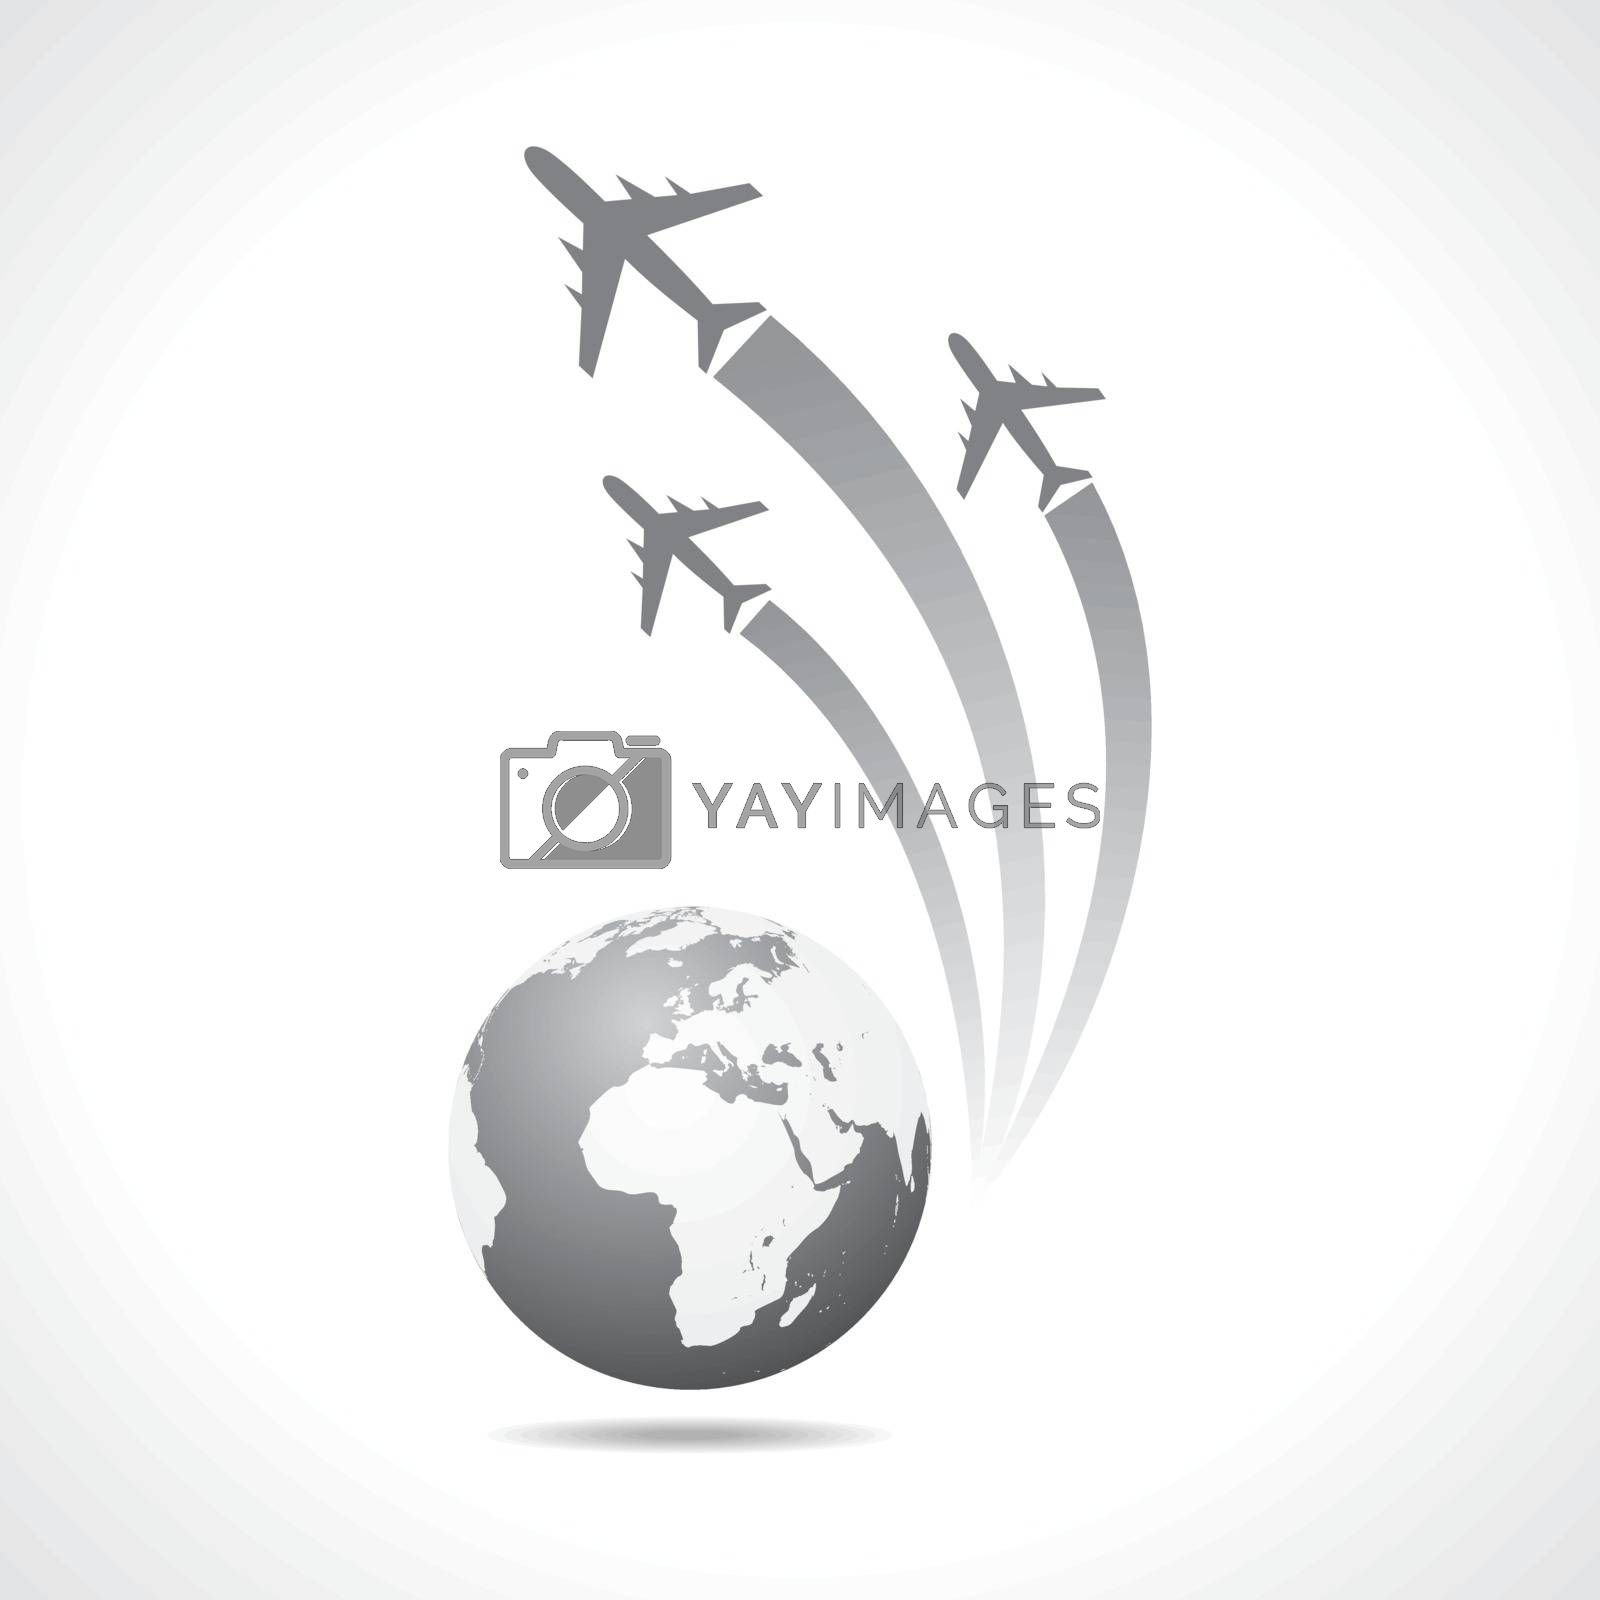 Airplanes flying around a globe stock vector